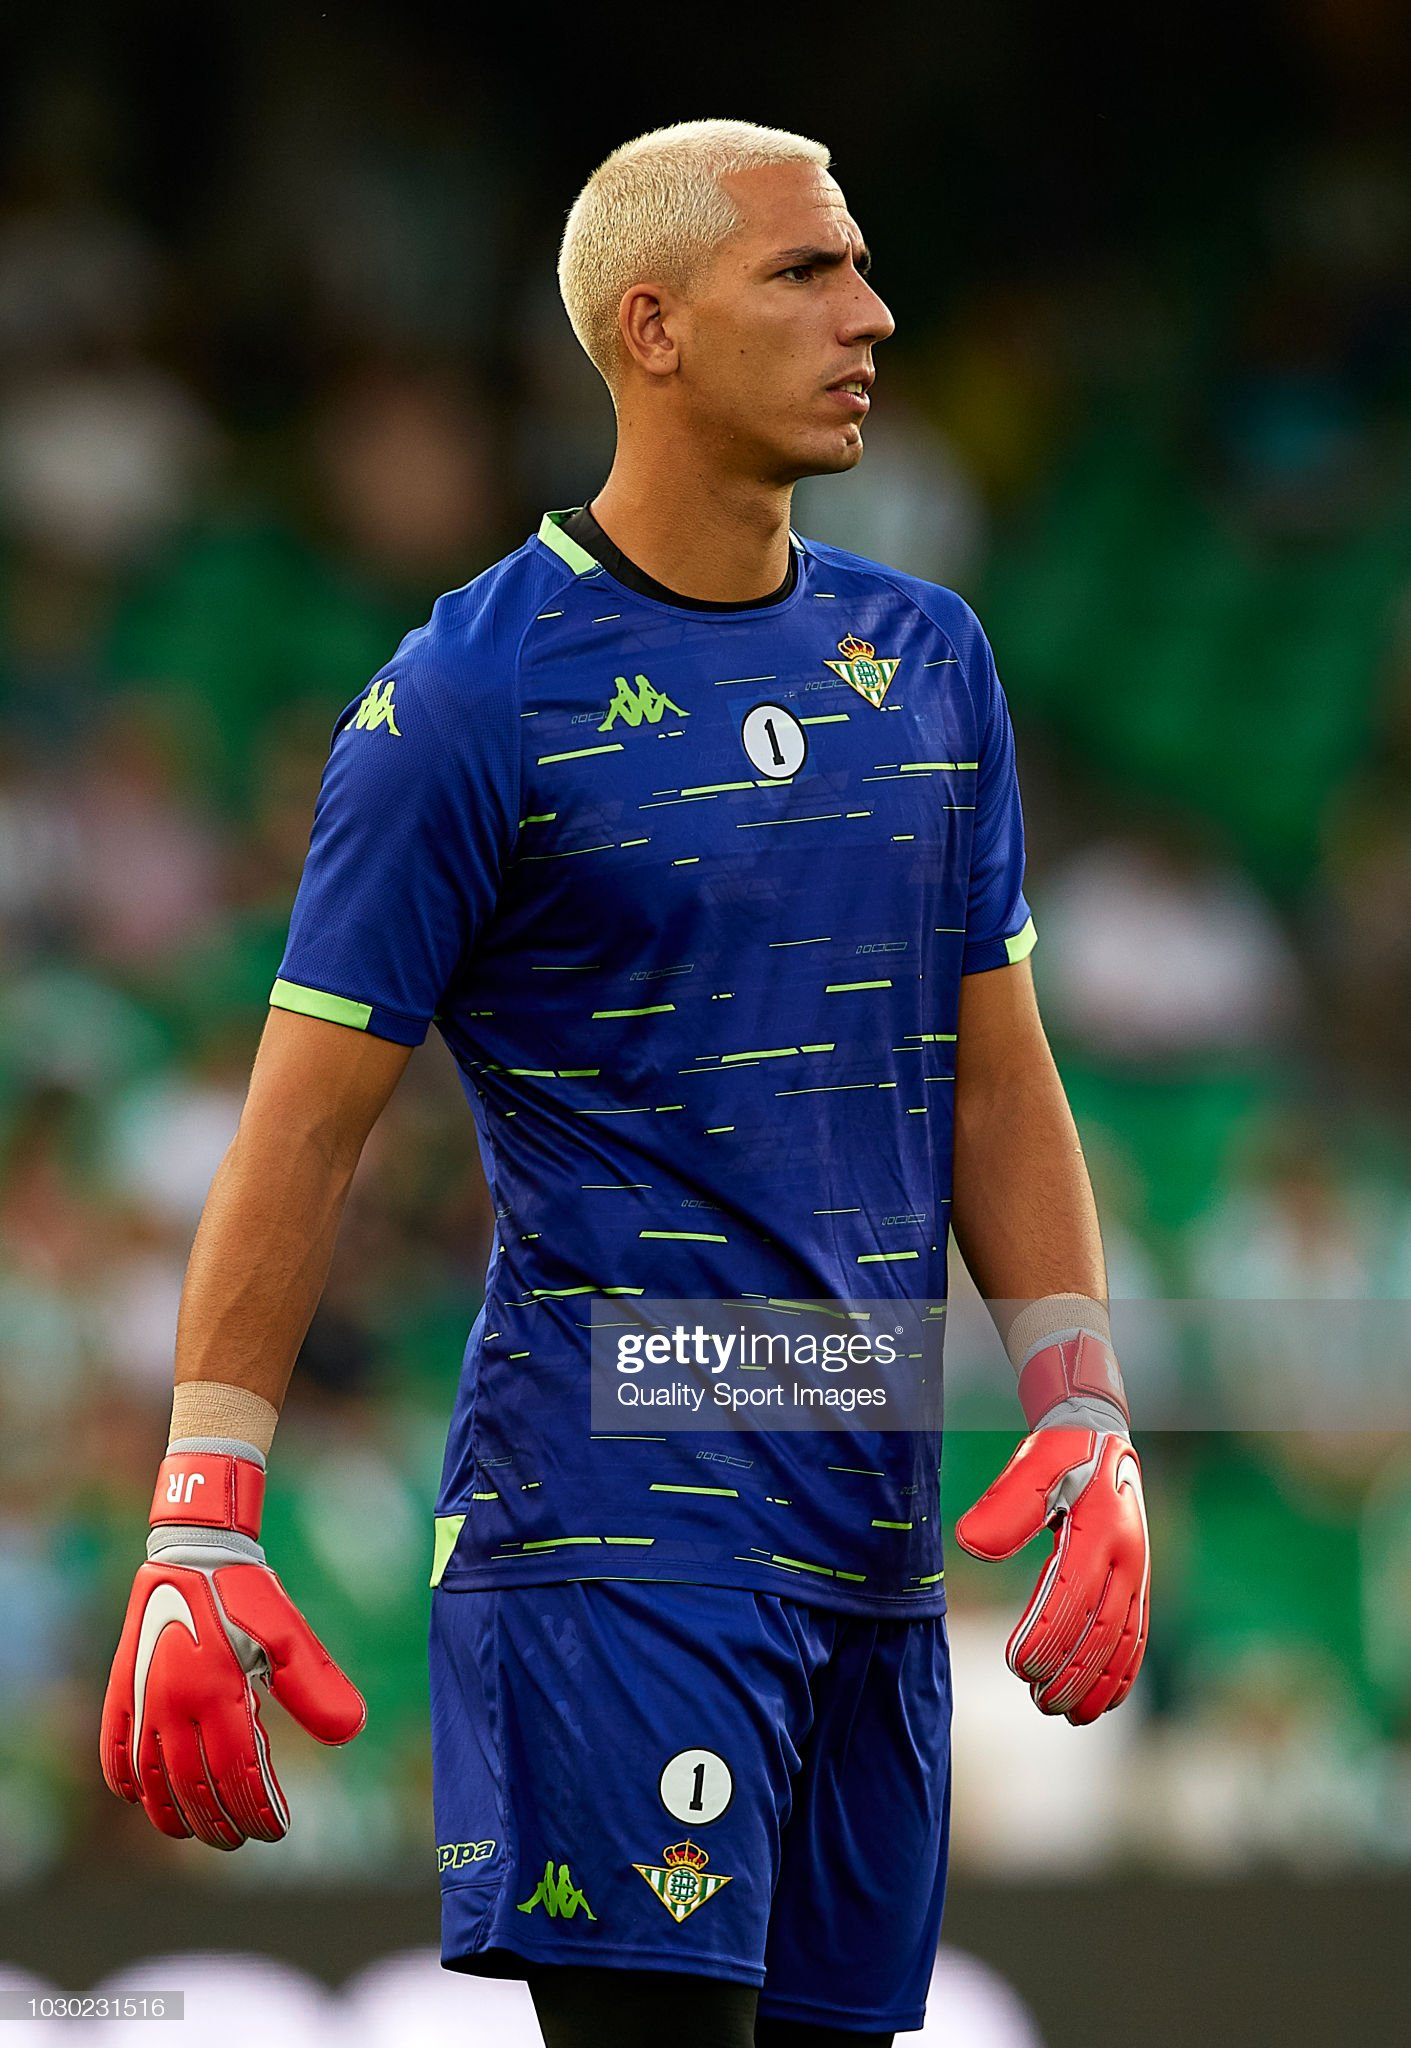 ¿Cuánto mide Joel Robles? - Altura - Real height Joel-robles-of-betis-looks-on-prior-to-the-la-liga-match-between-real-picture-id1030231516?s=2048x2048